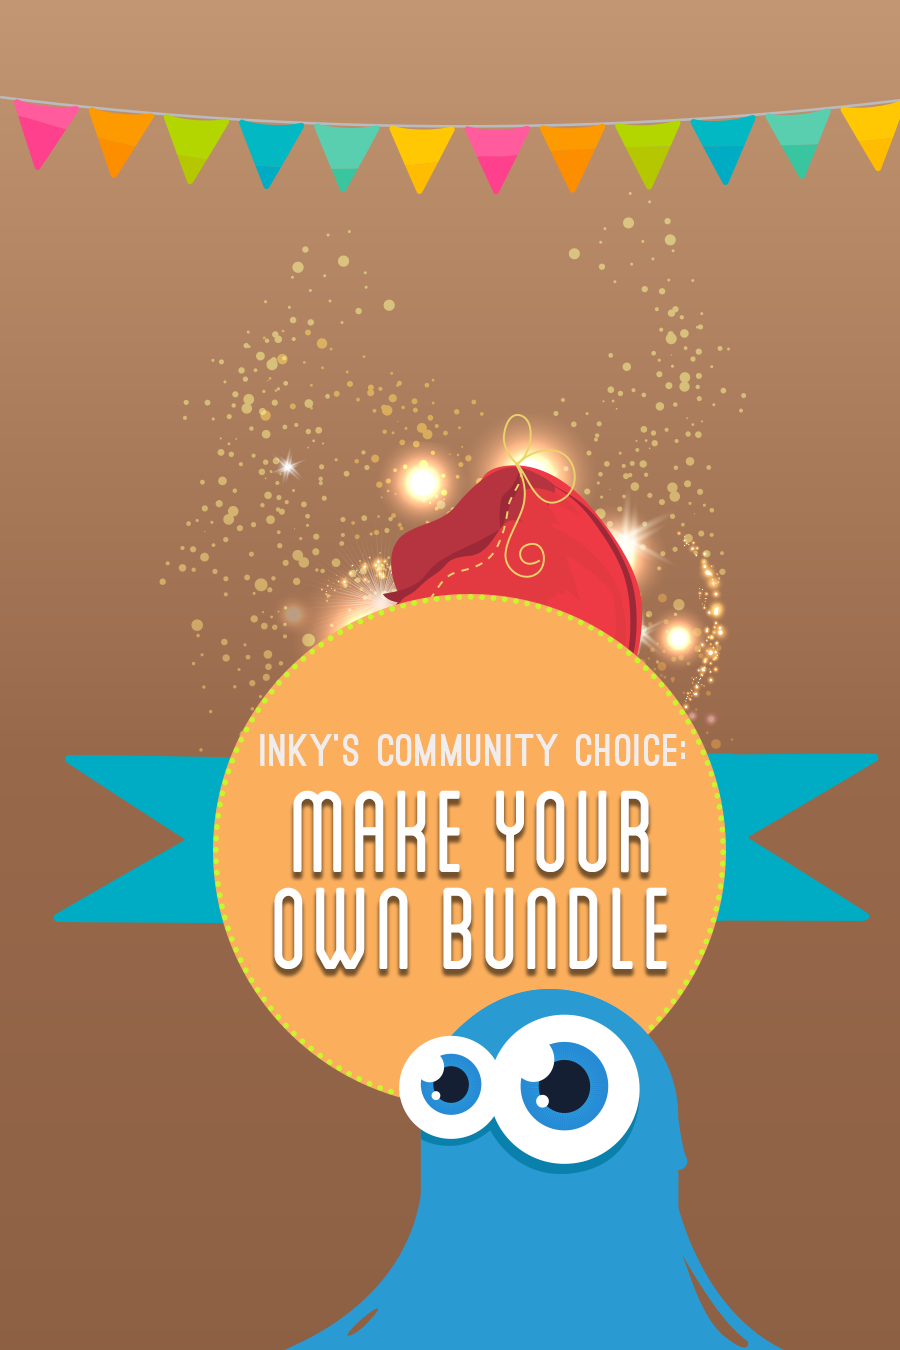 Inky's Community Choice: Make your own bundle